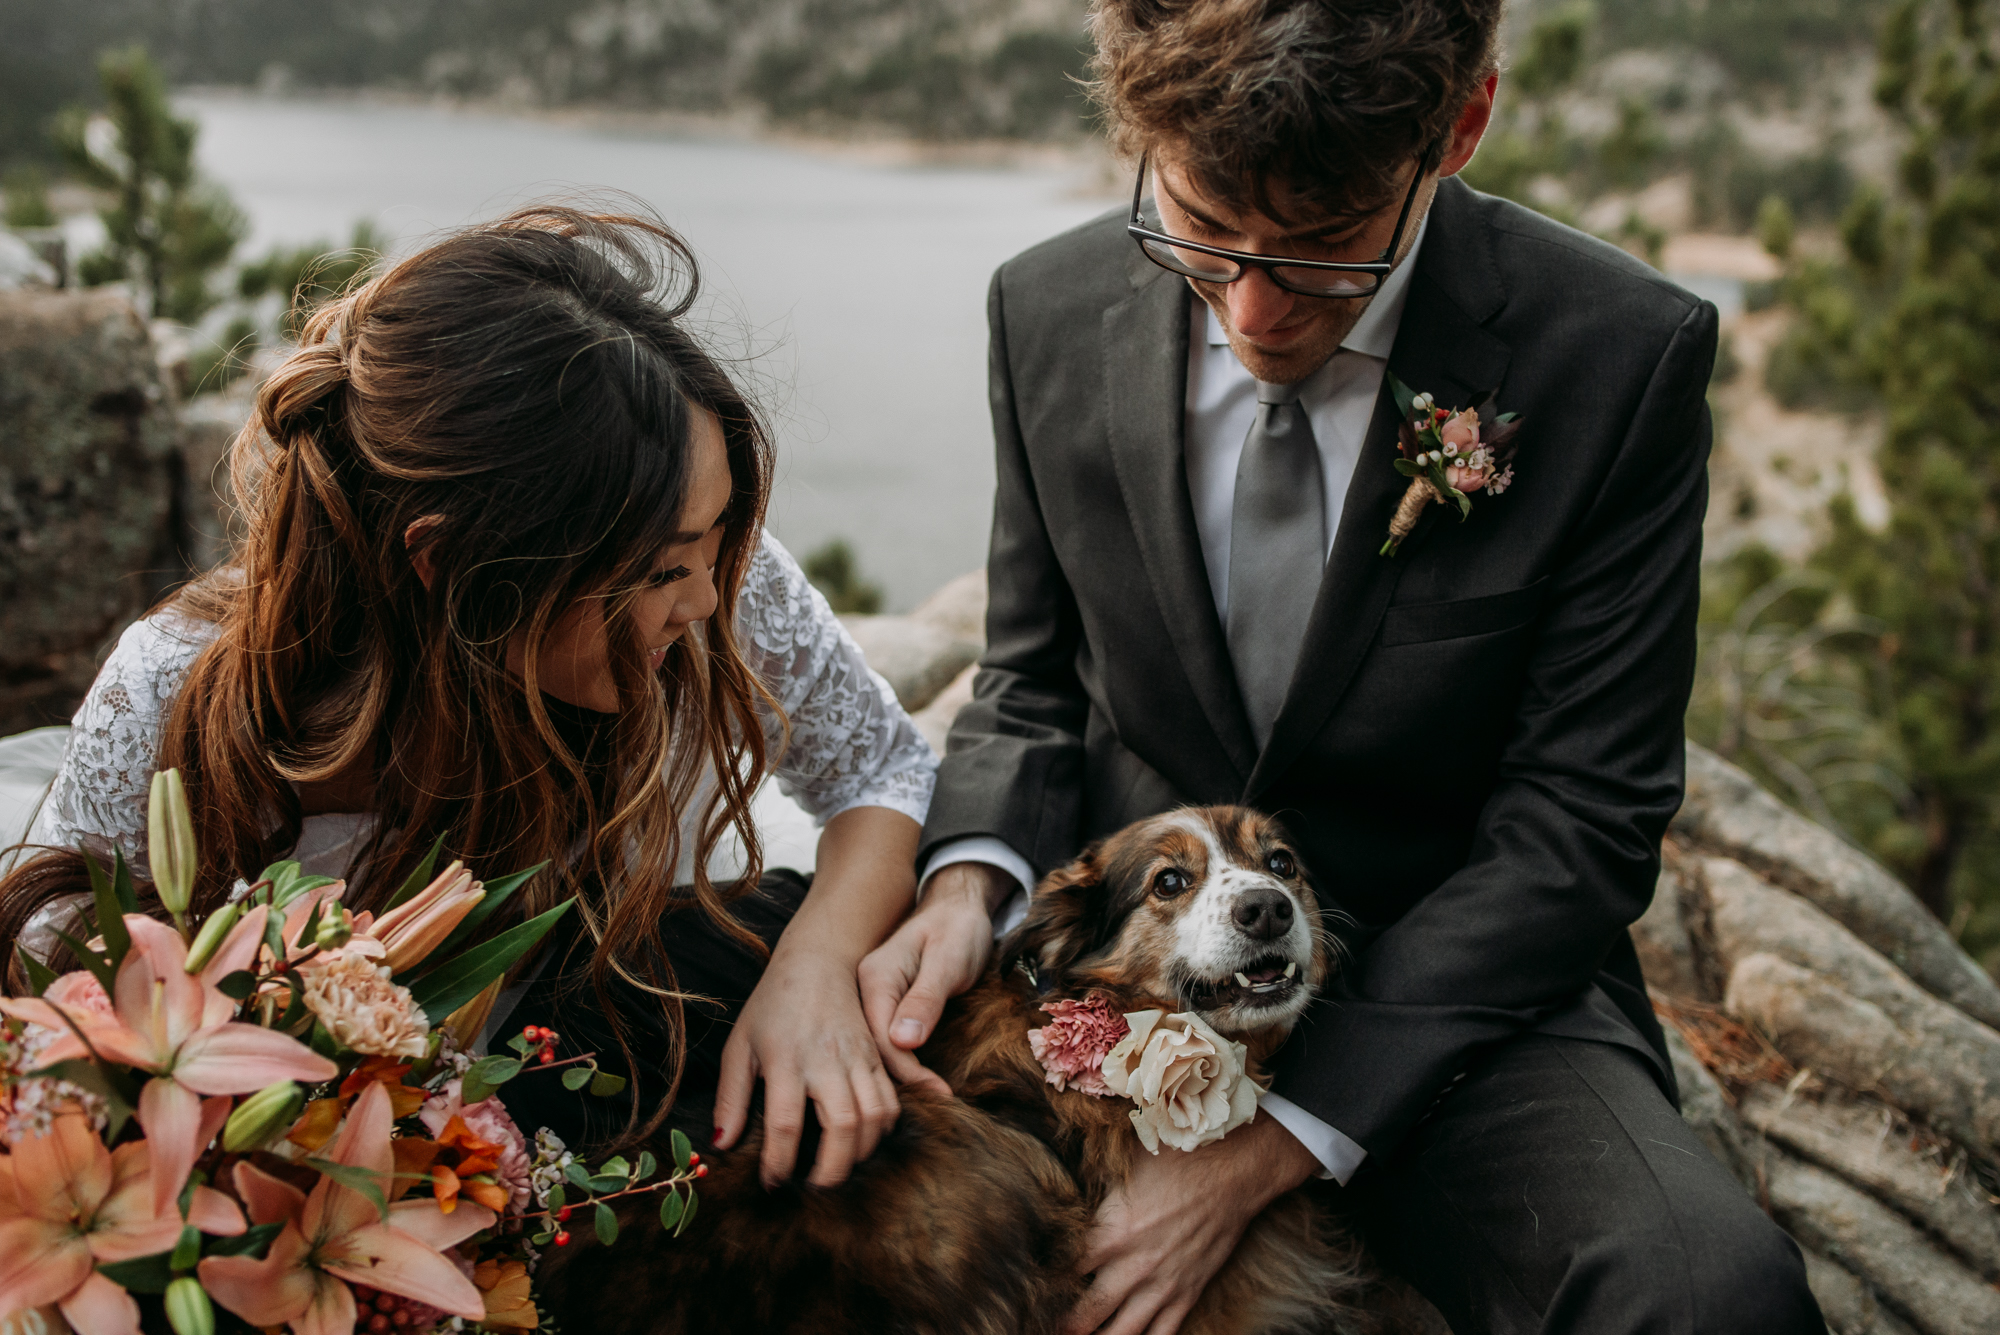 You should definitely bring your dogs to your wedding day!